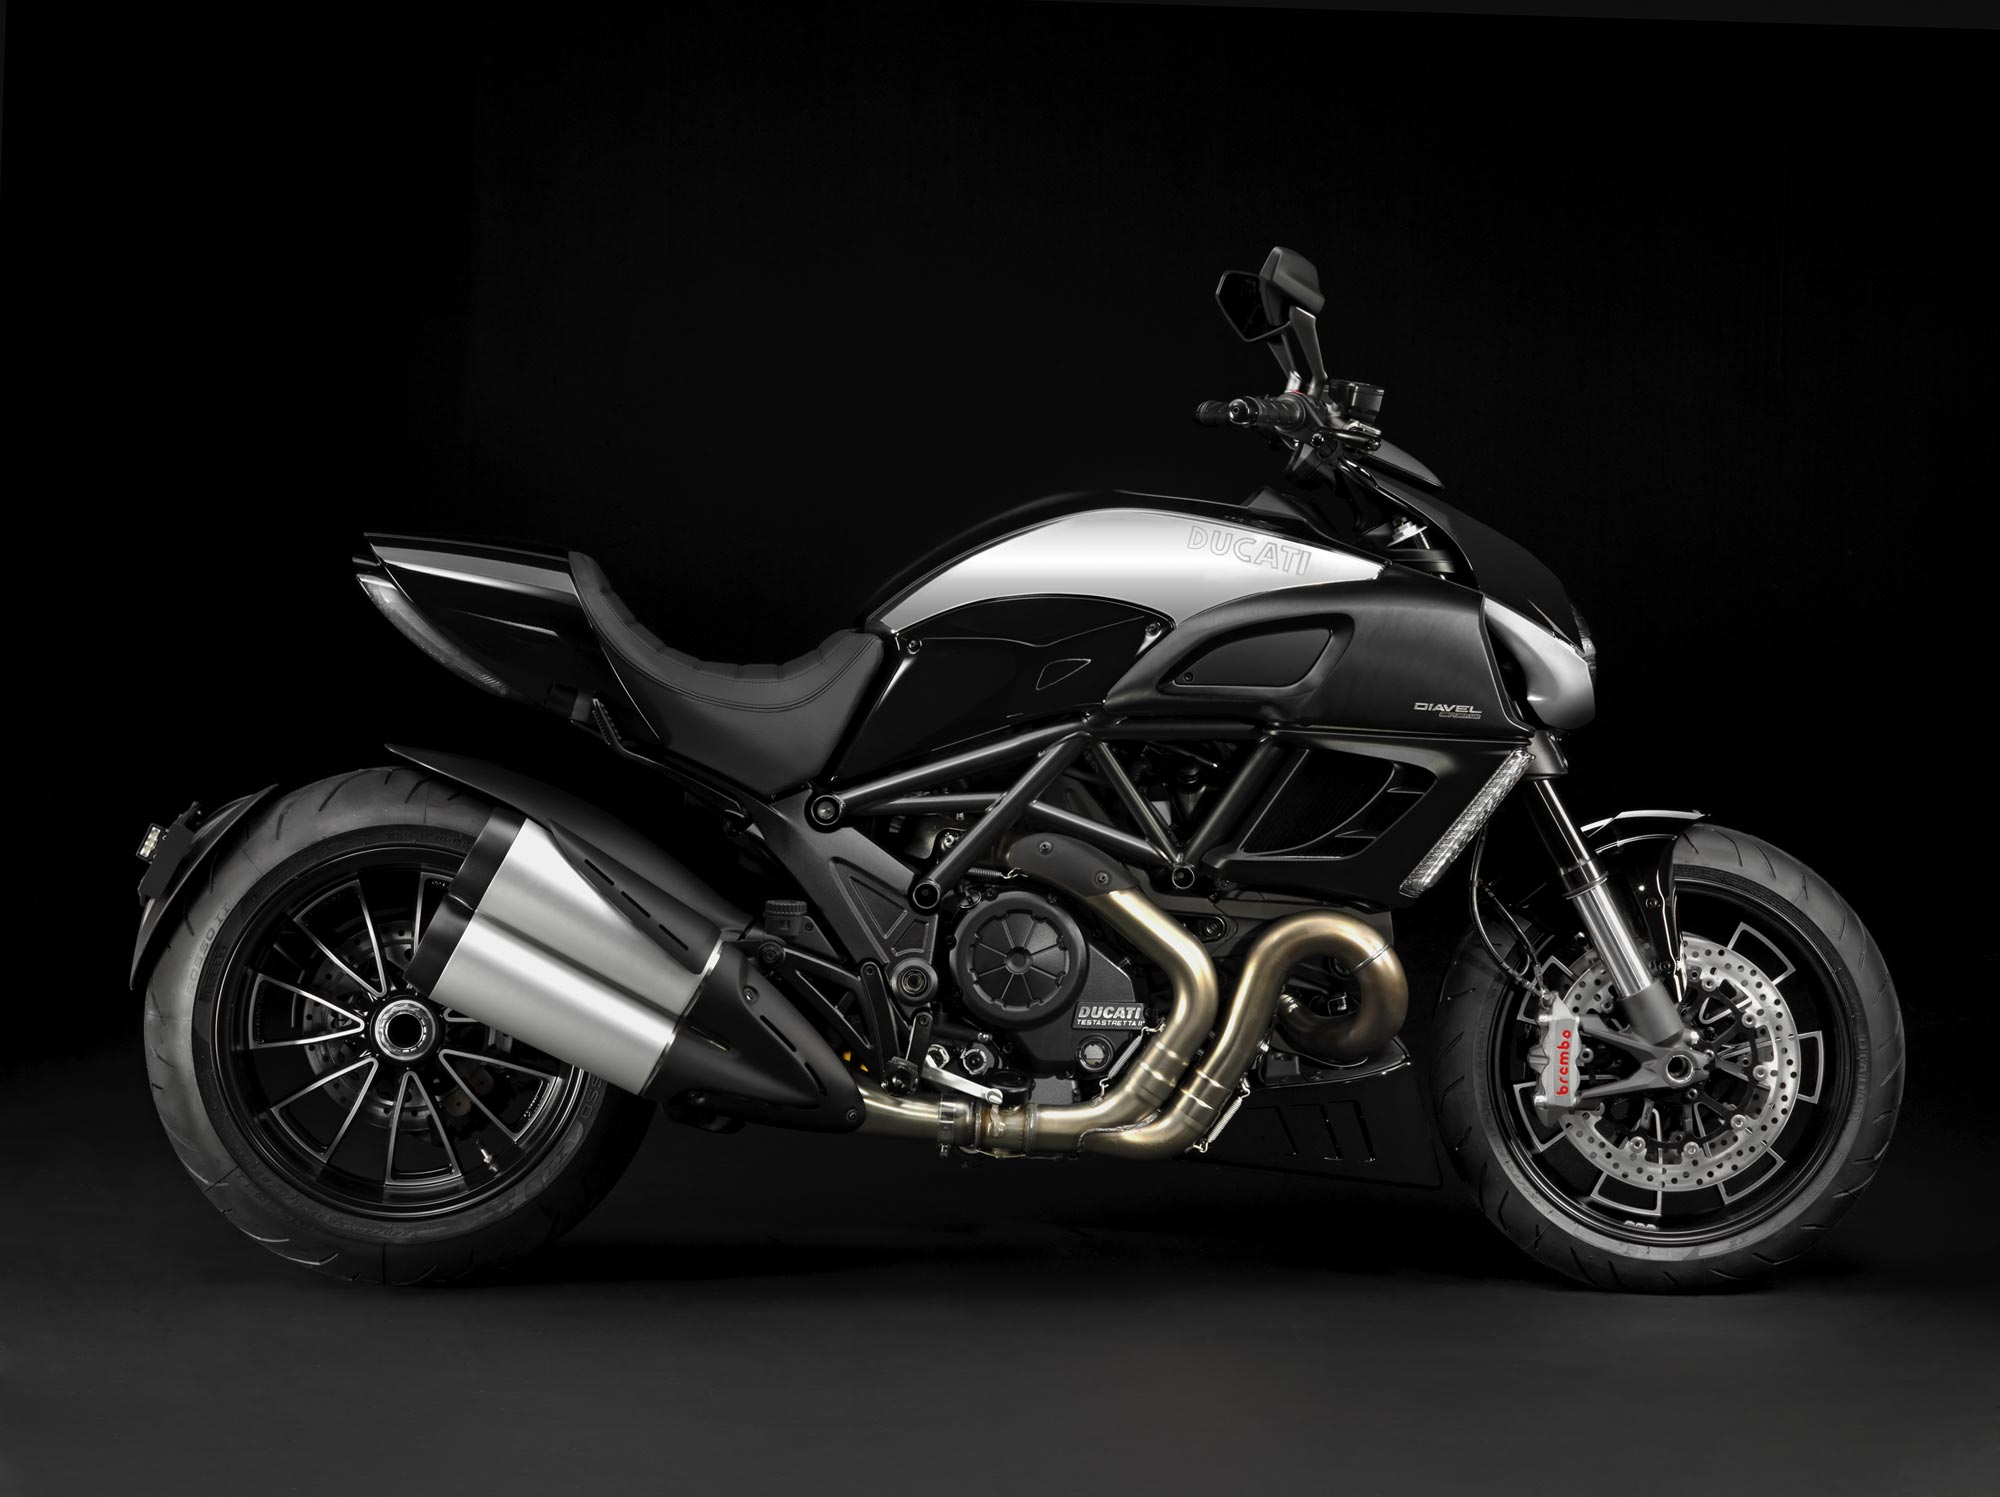 Ducati Panigale 1200cc >> Ducati Diavel Cromo Adds Bling to the Devil - Asphalt & Rubber